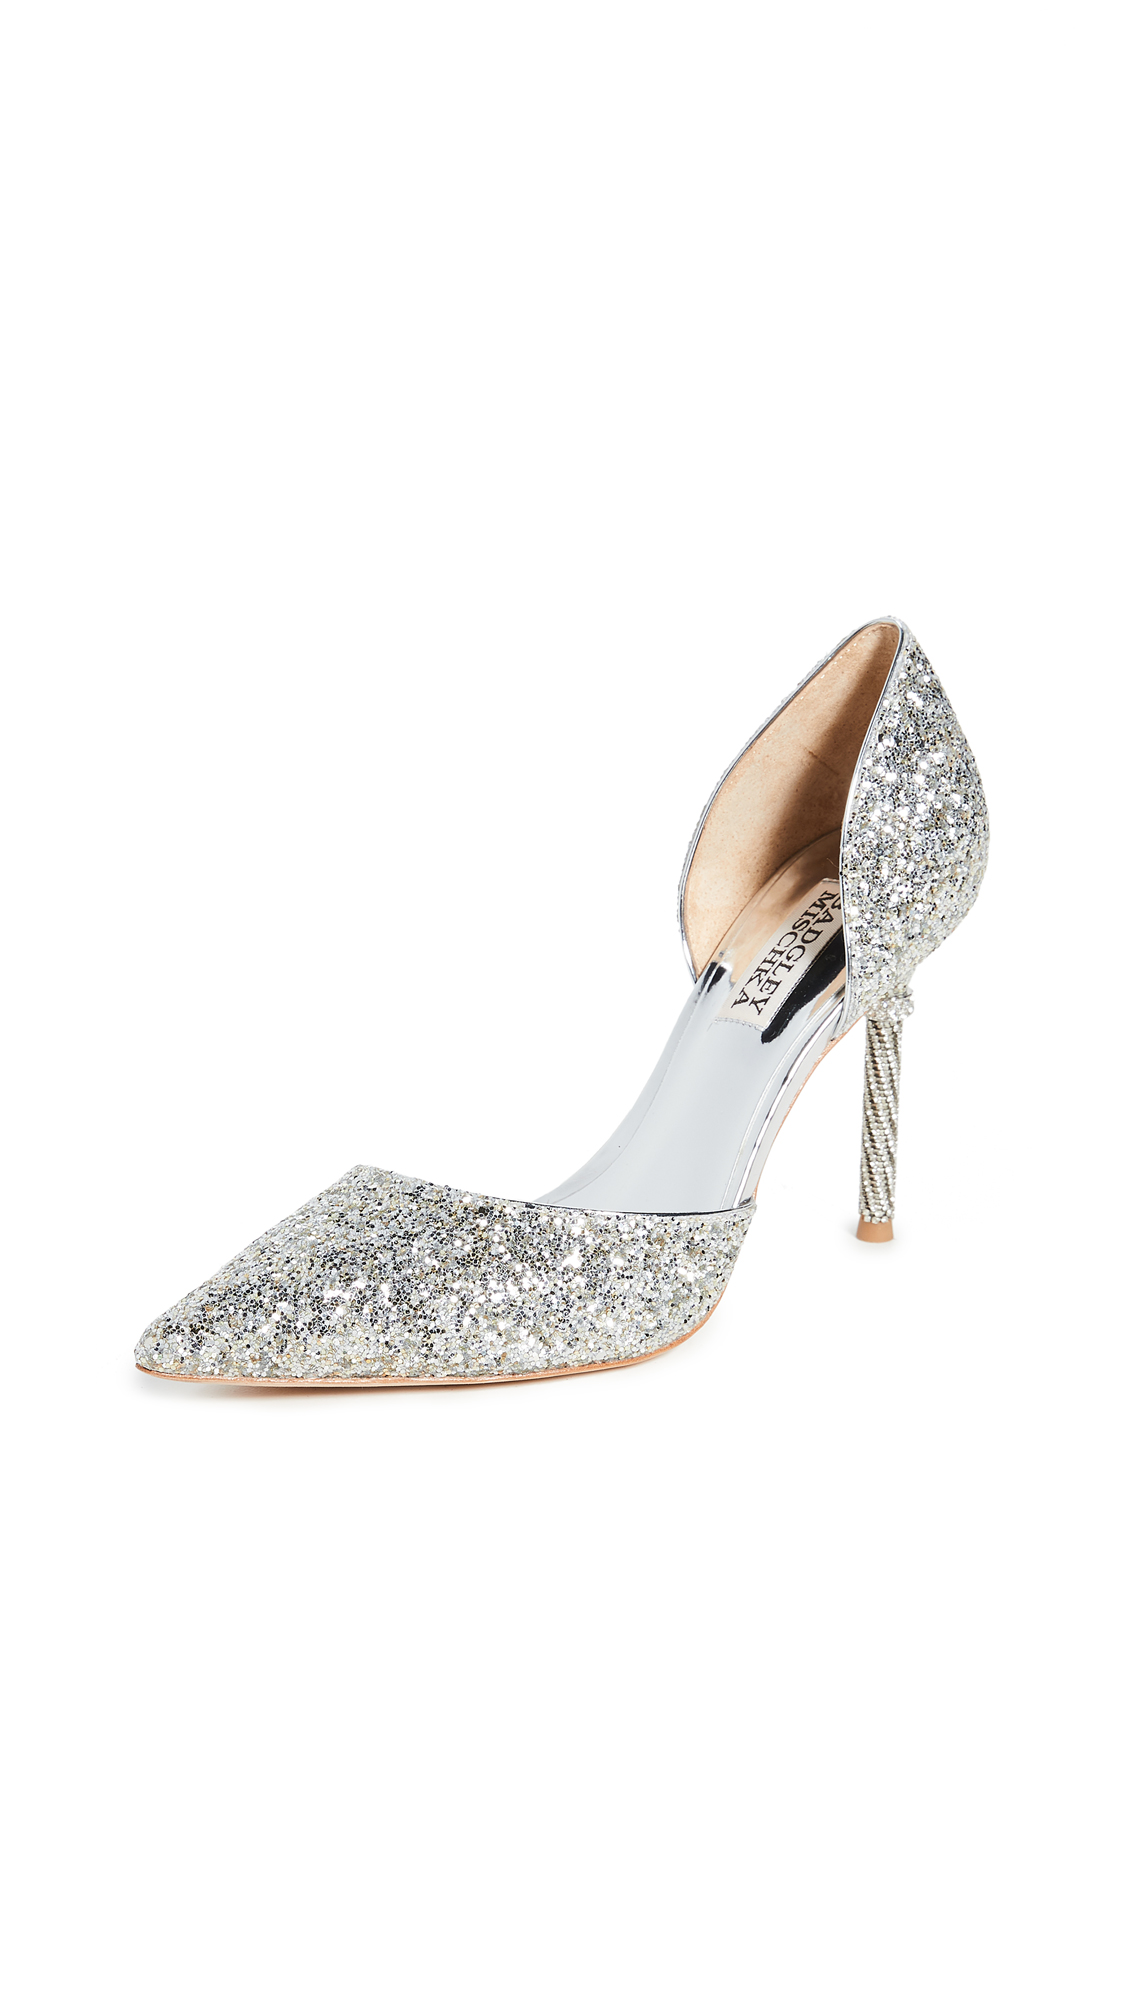 Badgley Mischka Ozara Pumps